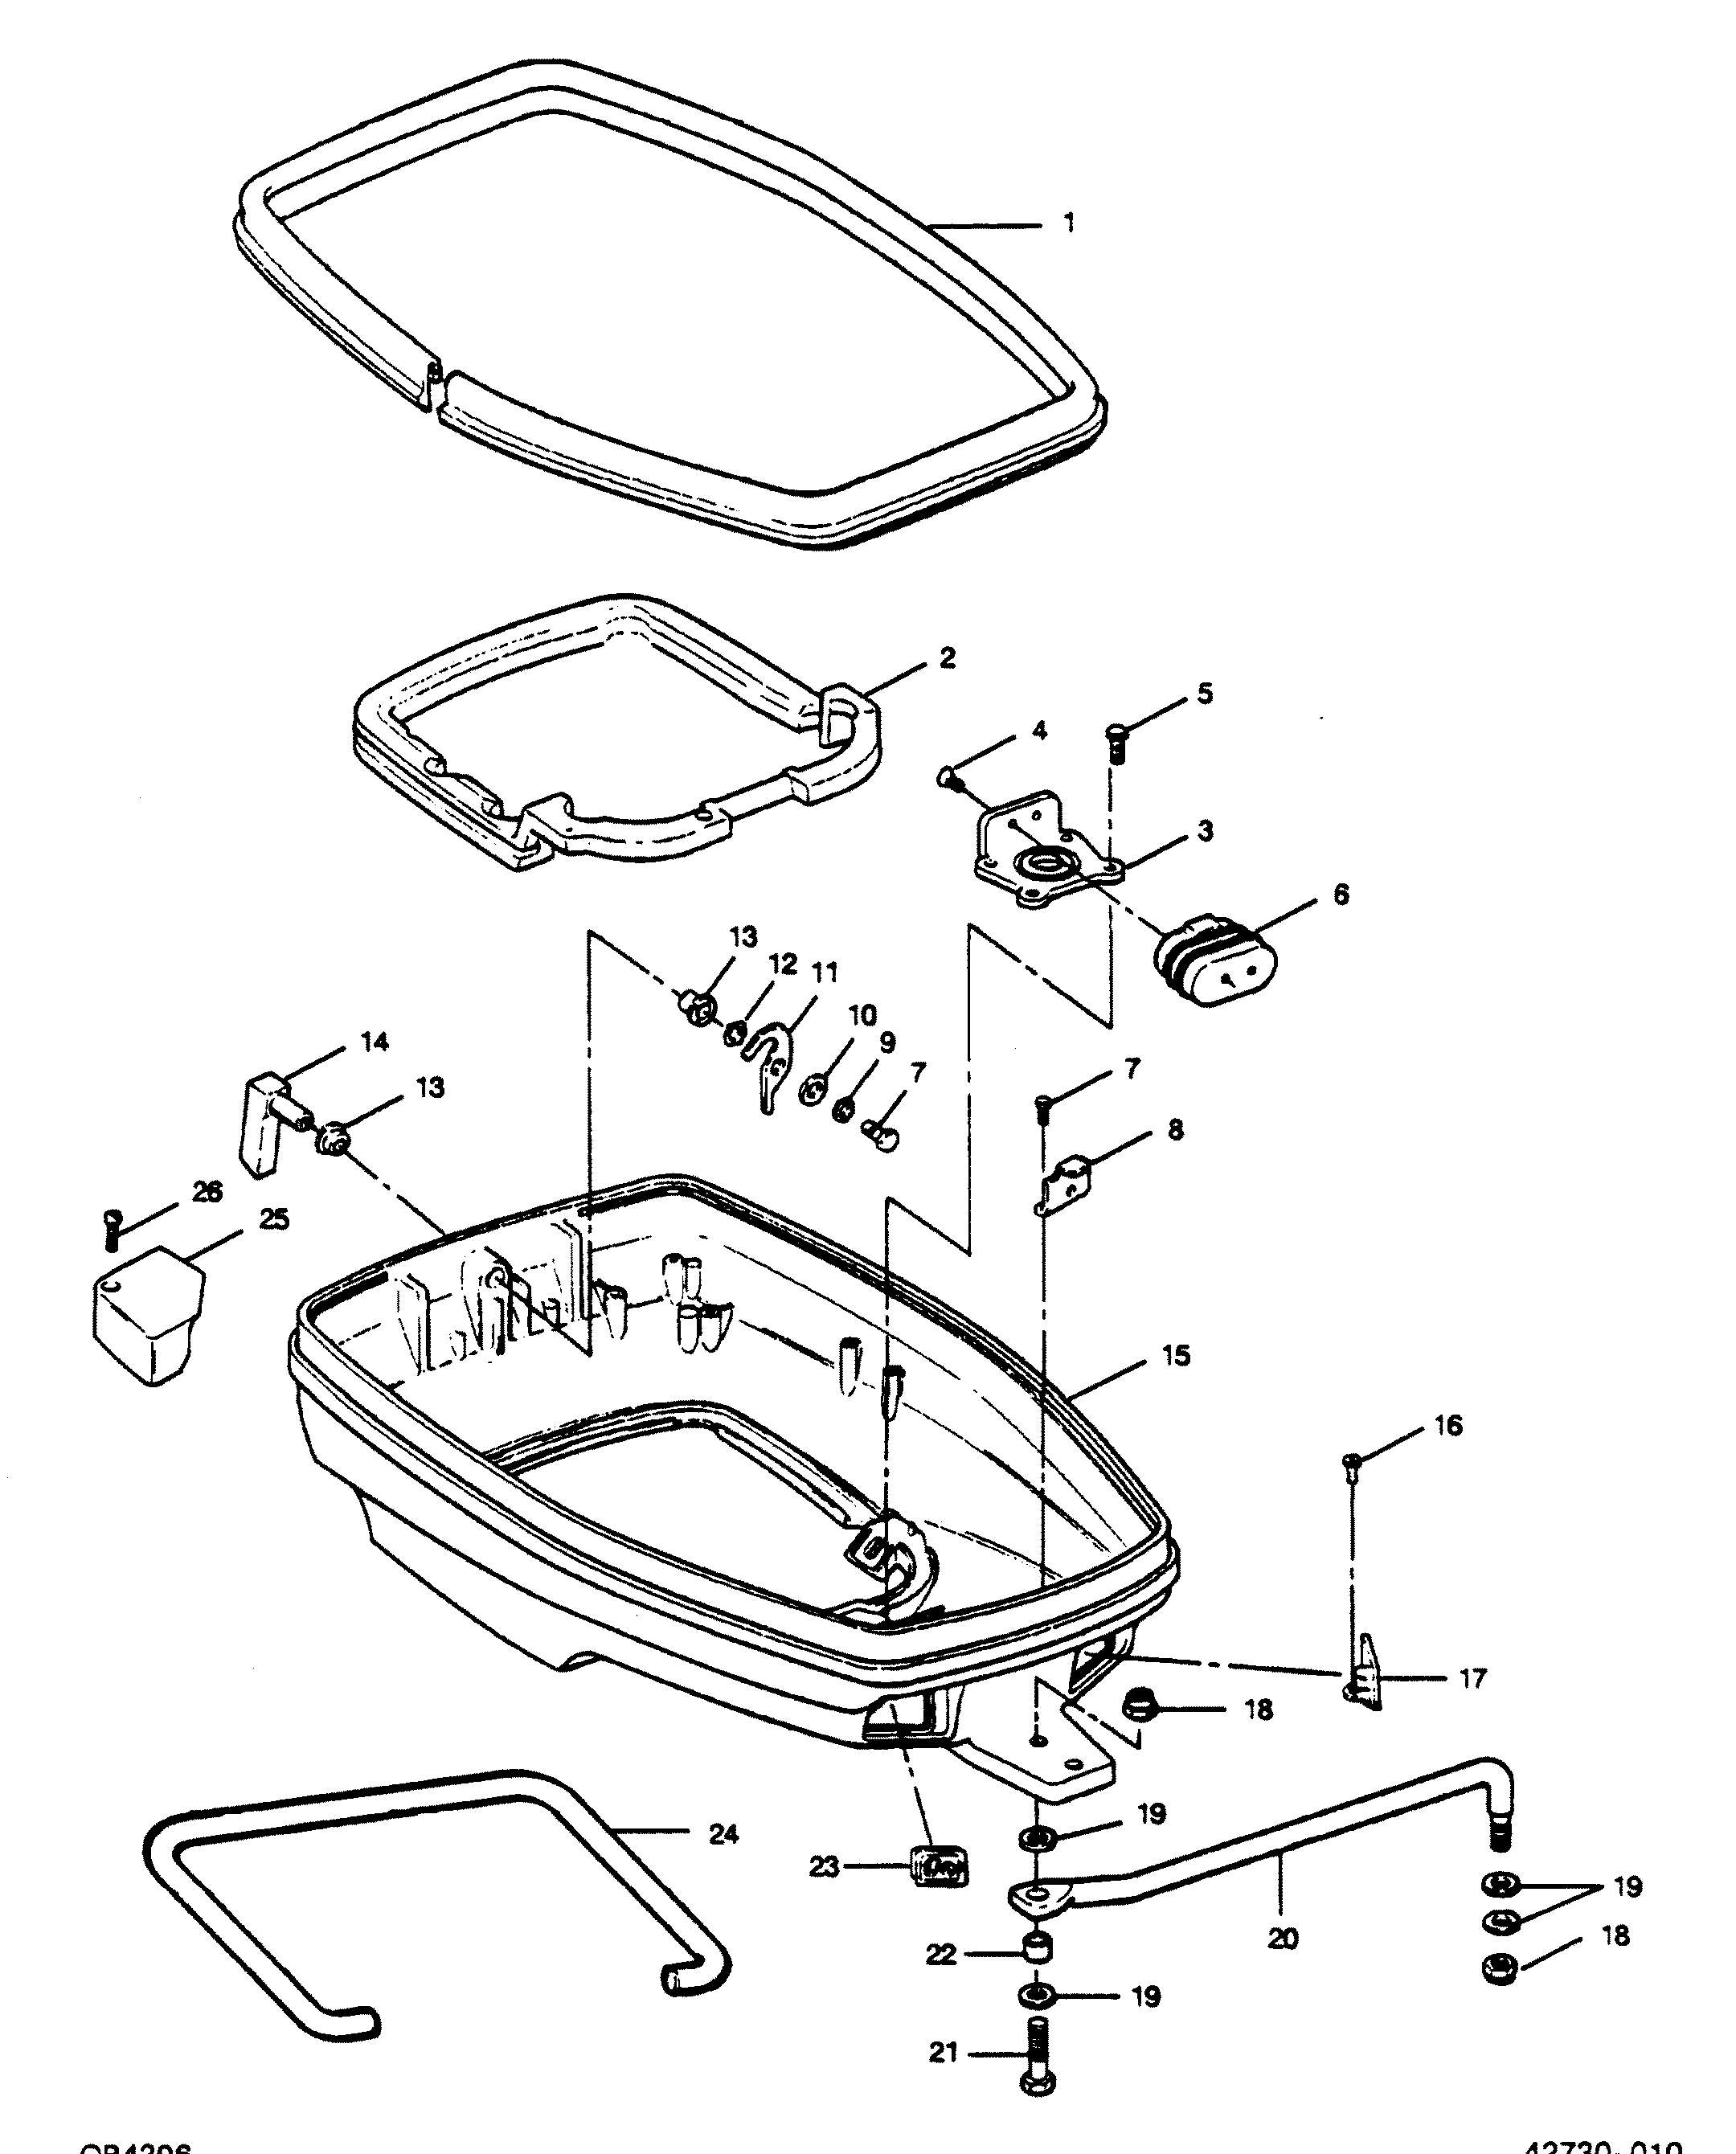 50 hp 1989 force outboard 507f9d electrical components diagram andoutboard 507f9d electrical components diagram and 19 Каталог запчастей force 50 h p (1989) 507f9c \\u2014 Запасные части50 hp 1989 force